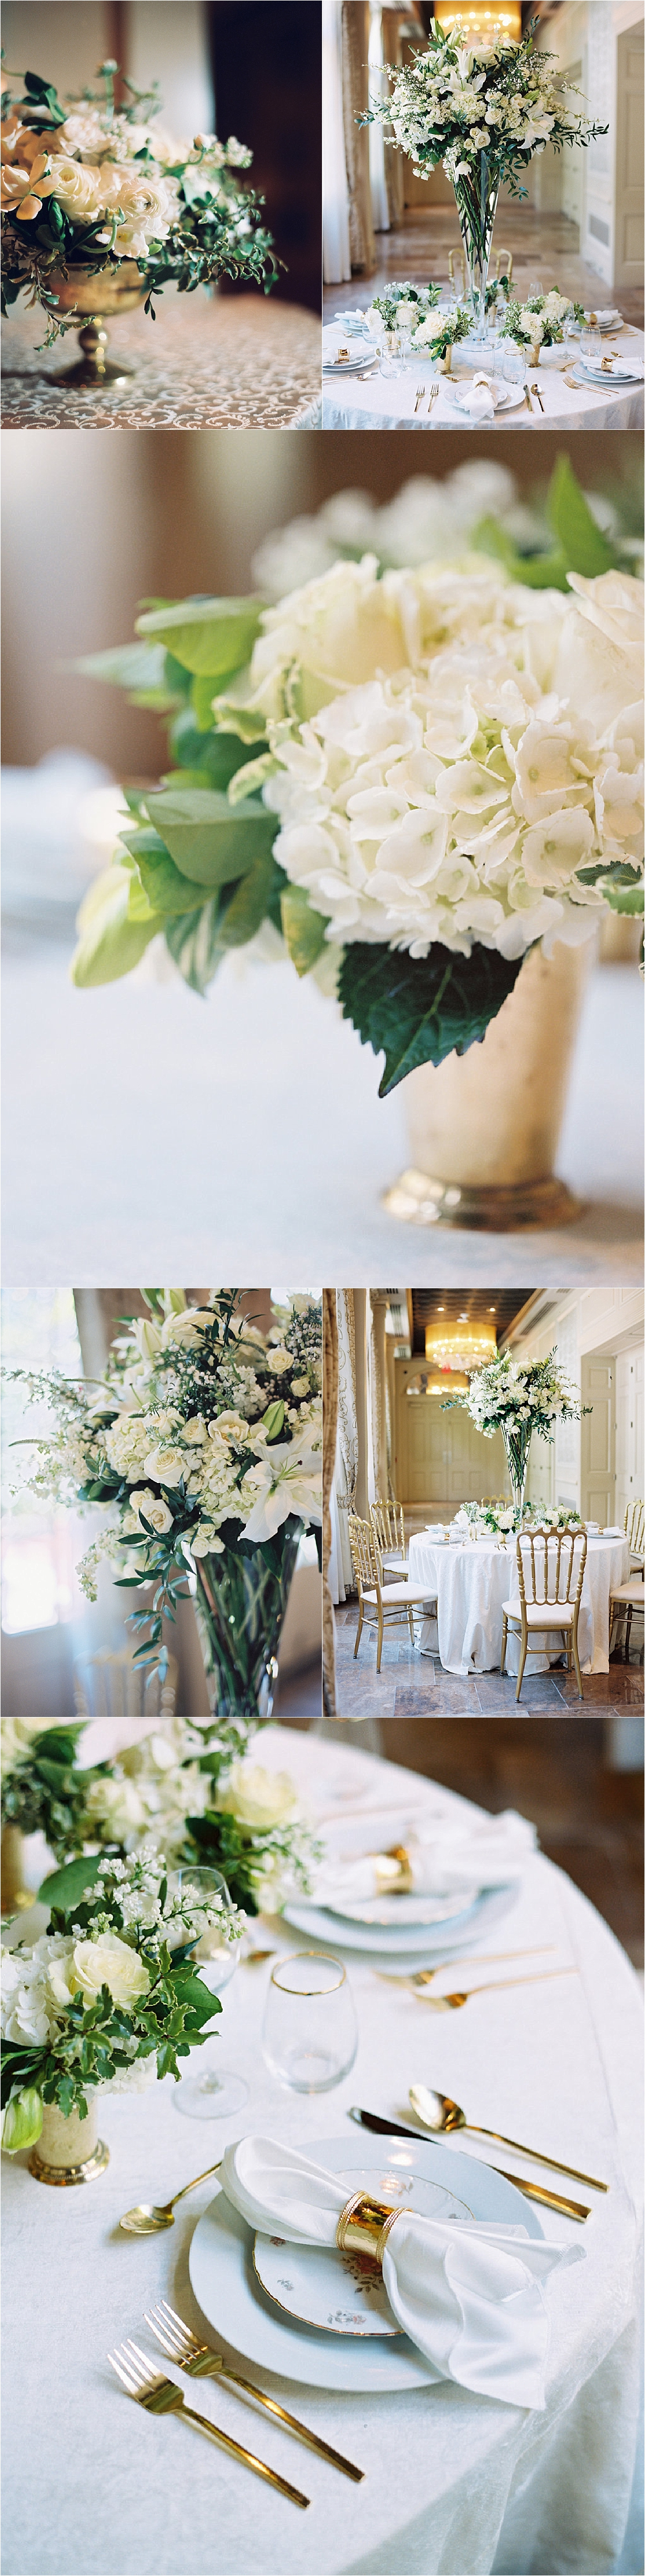 White and green floral arrangements in gold vases at the wedding reception